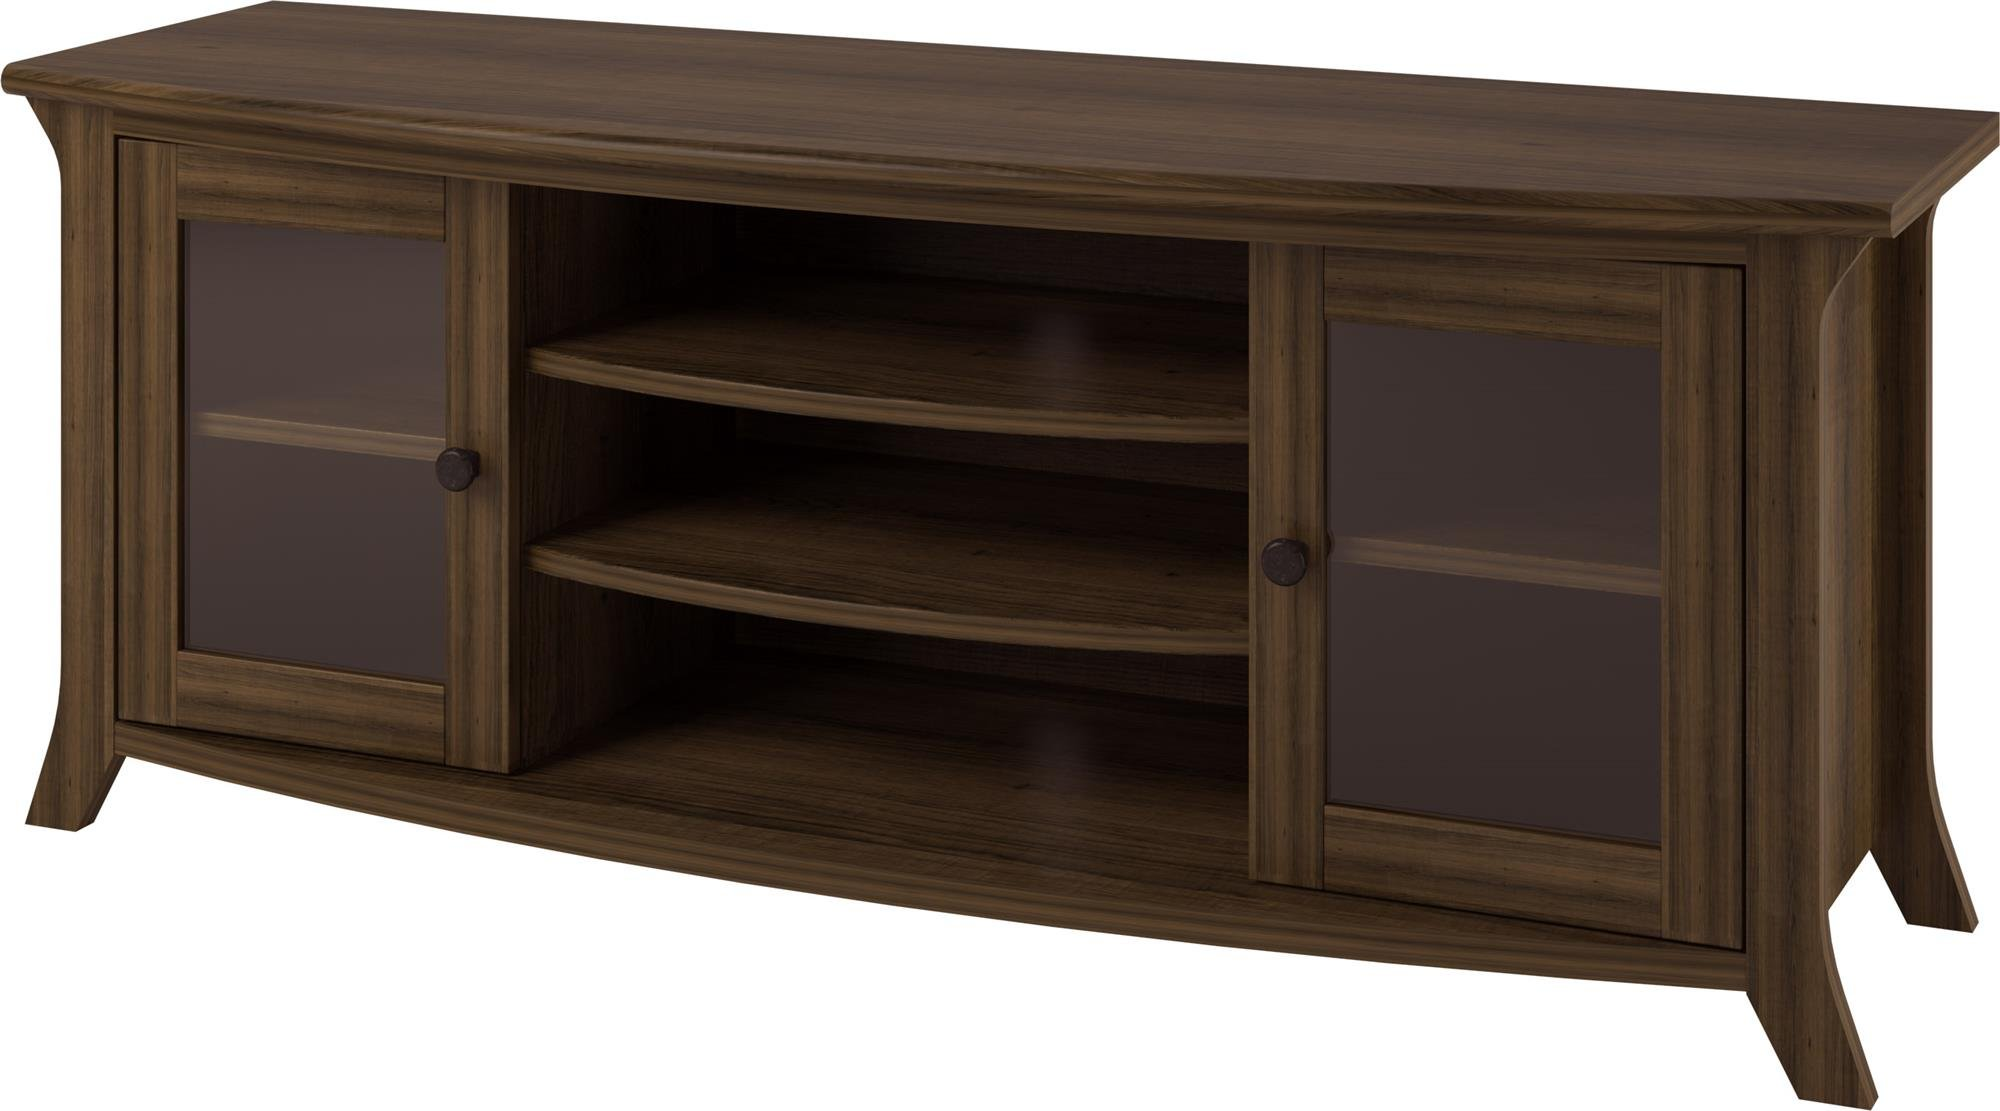 Ameriwood Home Oakridge TV Stand with Glass Doors for TVs up to 60'', Brown Oak